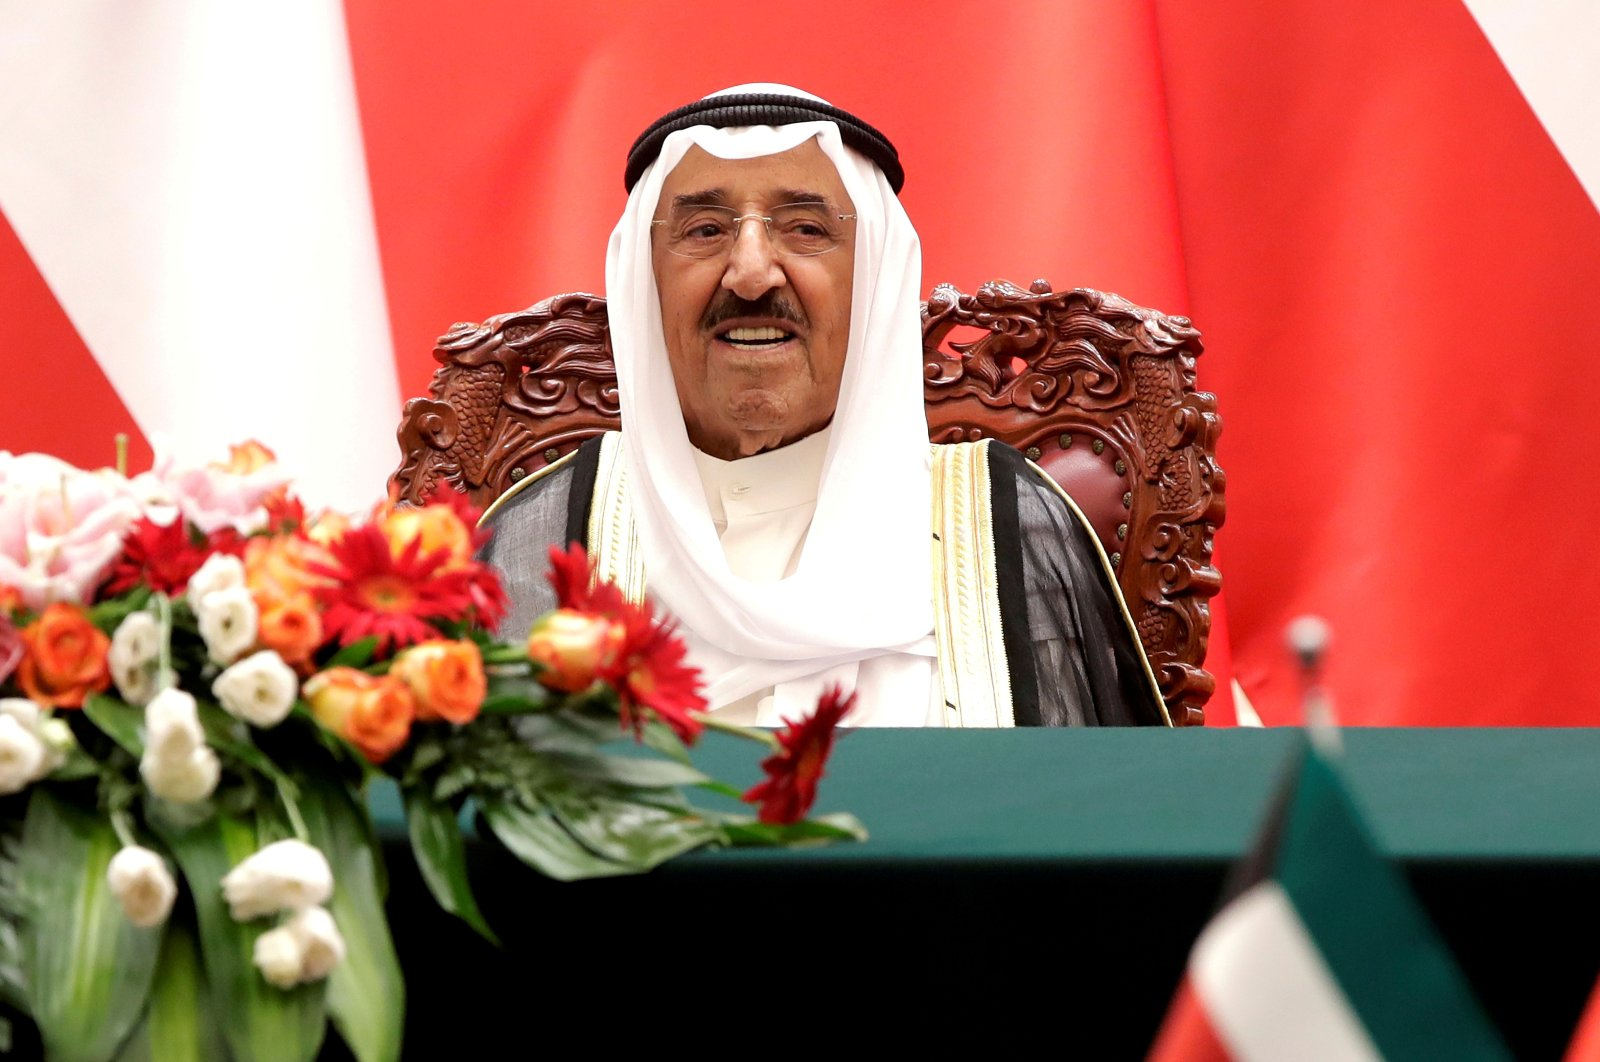 Kuwaiti Emir Sheikh Sabah al-Ahmad al-Jaber al-Sabah witnesses a signing ceremony at the Great Hall of the People in Beijing, China, July 9, 2018. (Reuters Photo)